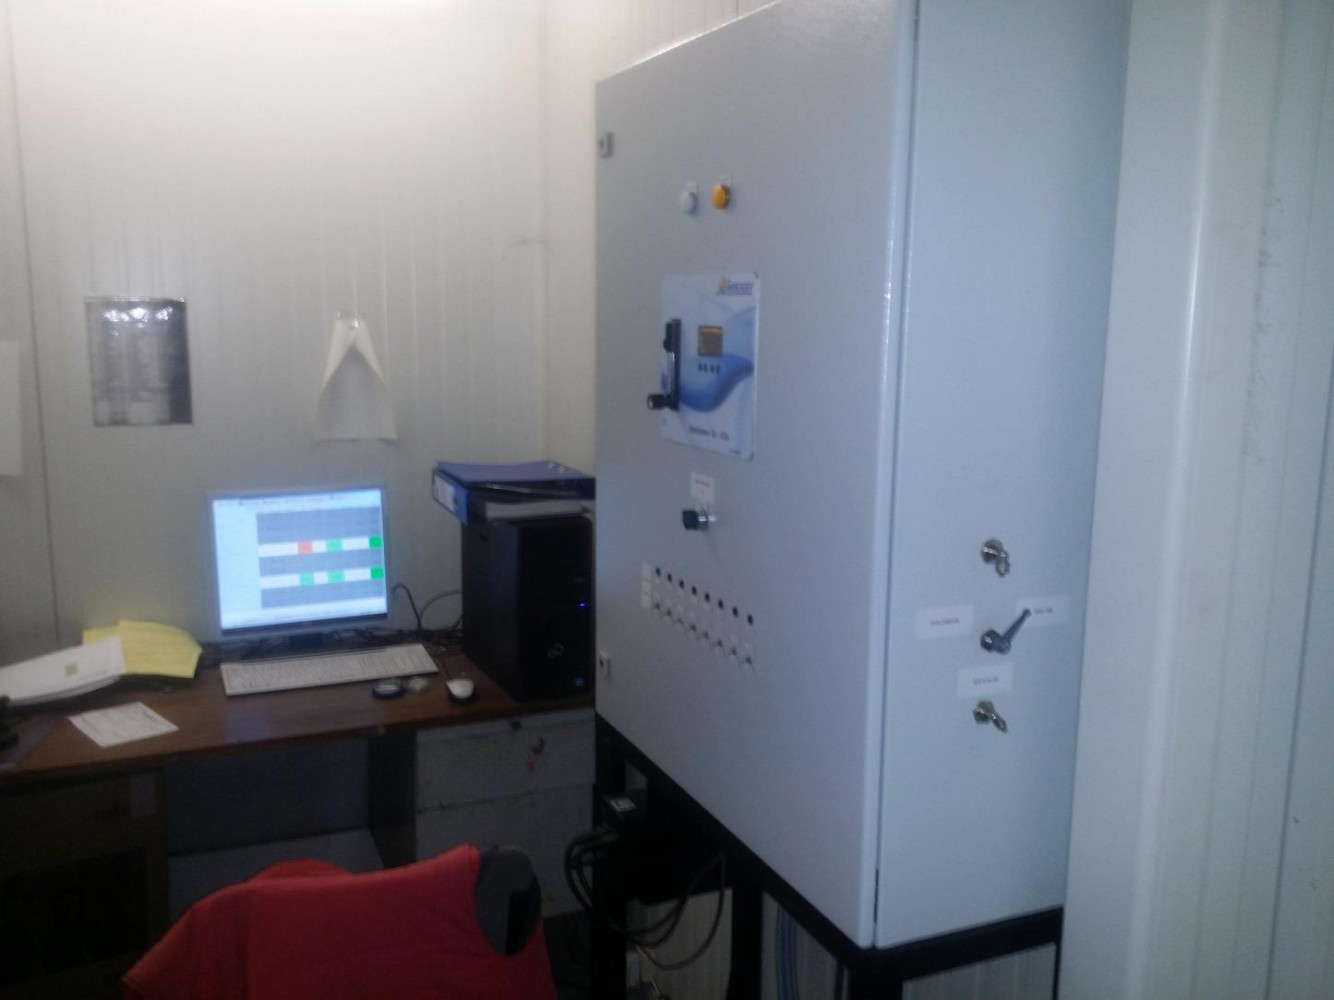 Systeme-controle-chambre-athmosphere-controlee